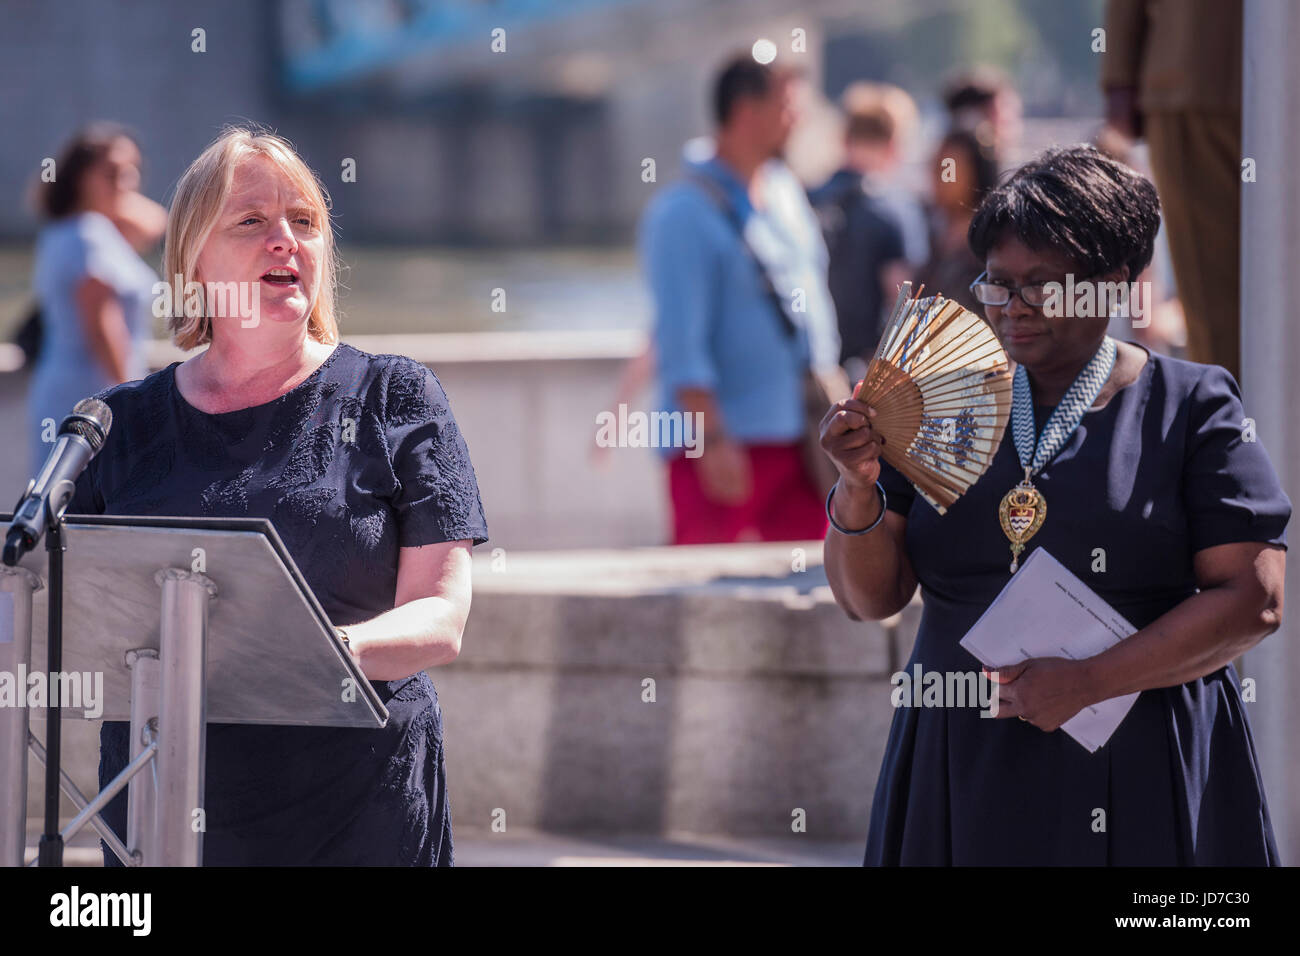 London, UK. 19th June, 2017. The Deputy Mayor Joanne Mcartney with the Chair of teh London Assmbley in the heat - Stock Image